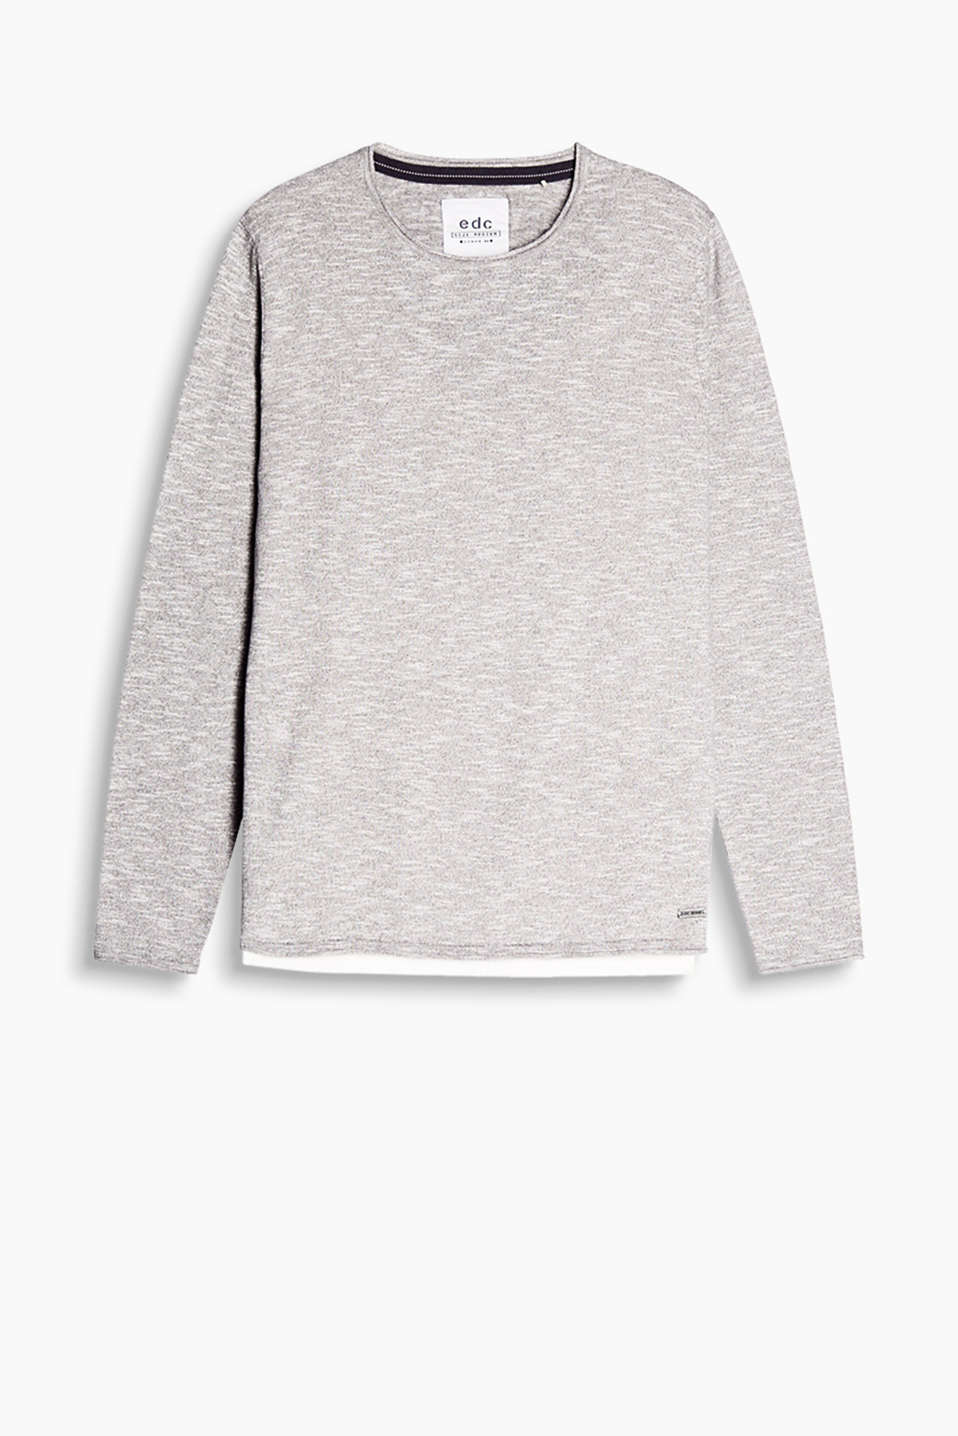 A fashion essential: melange jumper with a round neckline, made of pure cotton.